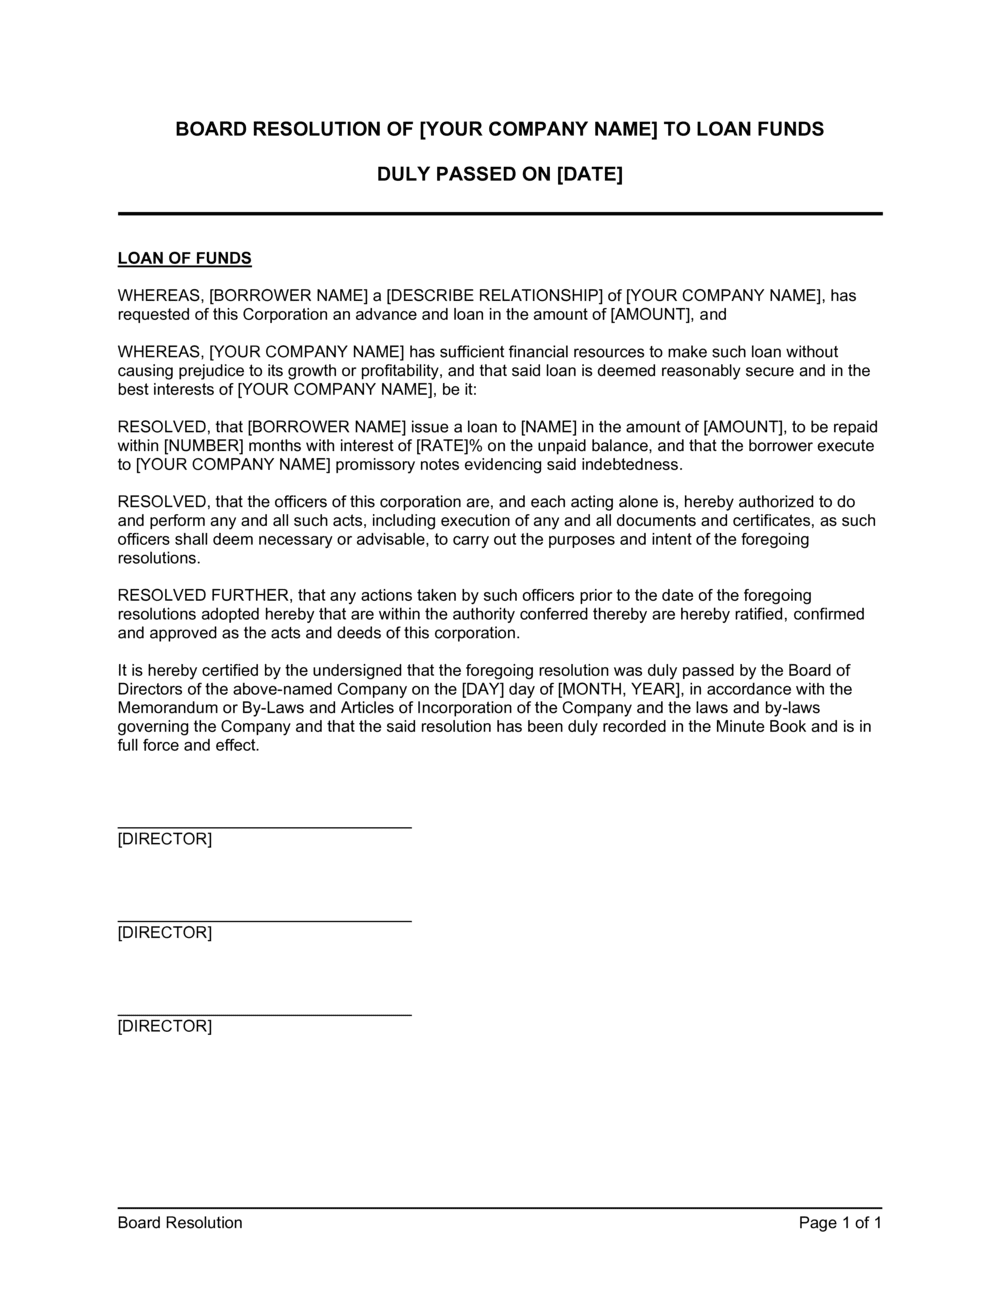 Premium Loans Board Resolution For Loan From Director